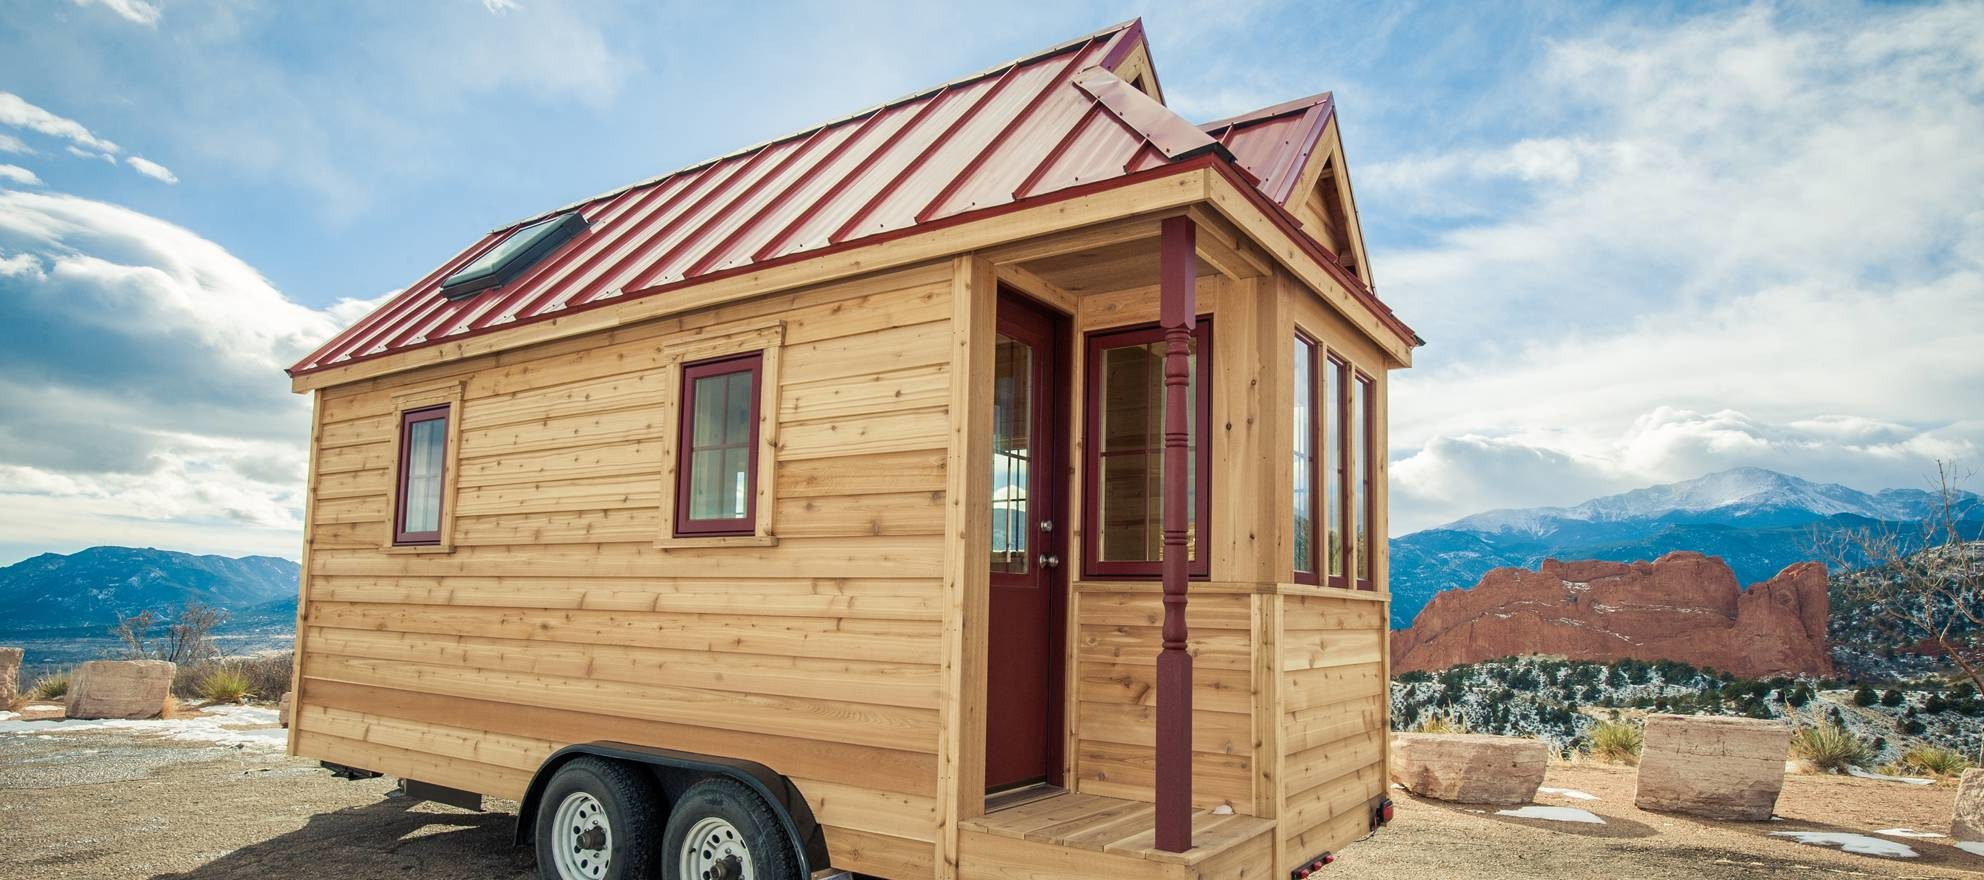 3 reasons tiny homes are next big thing